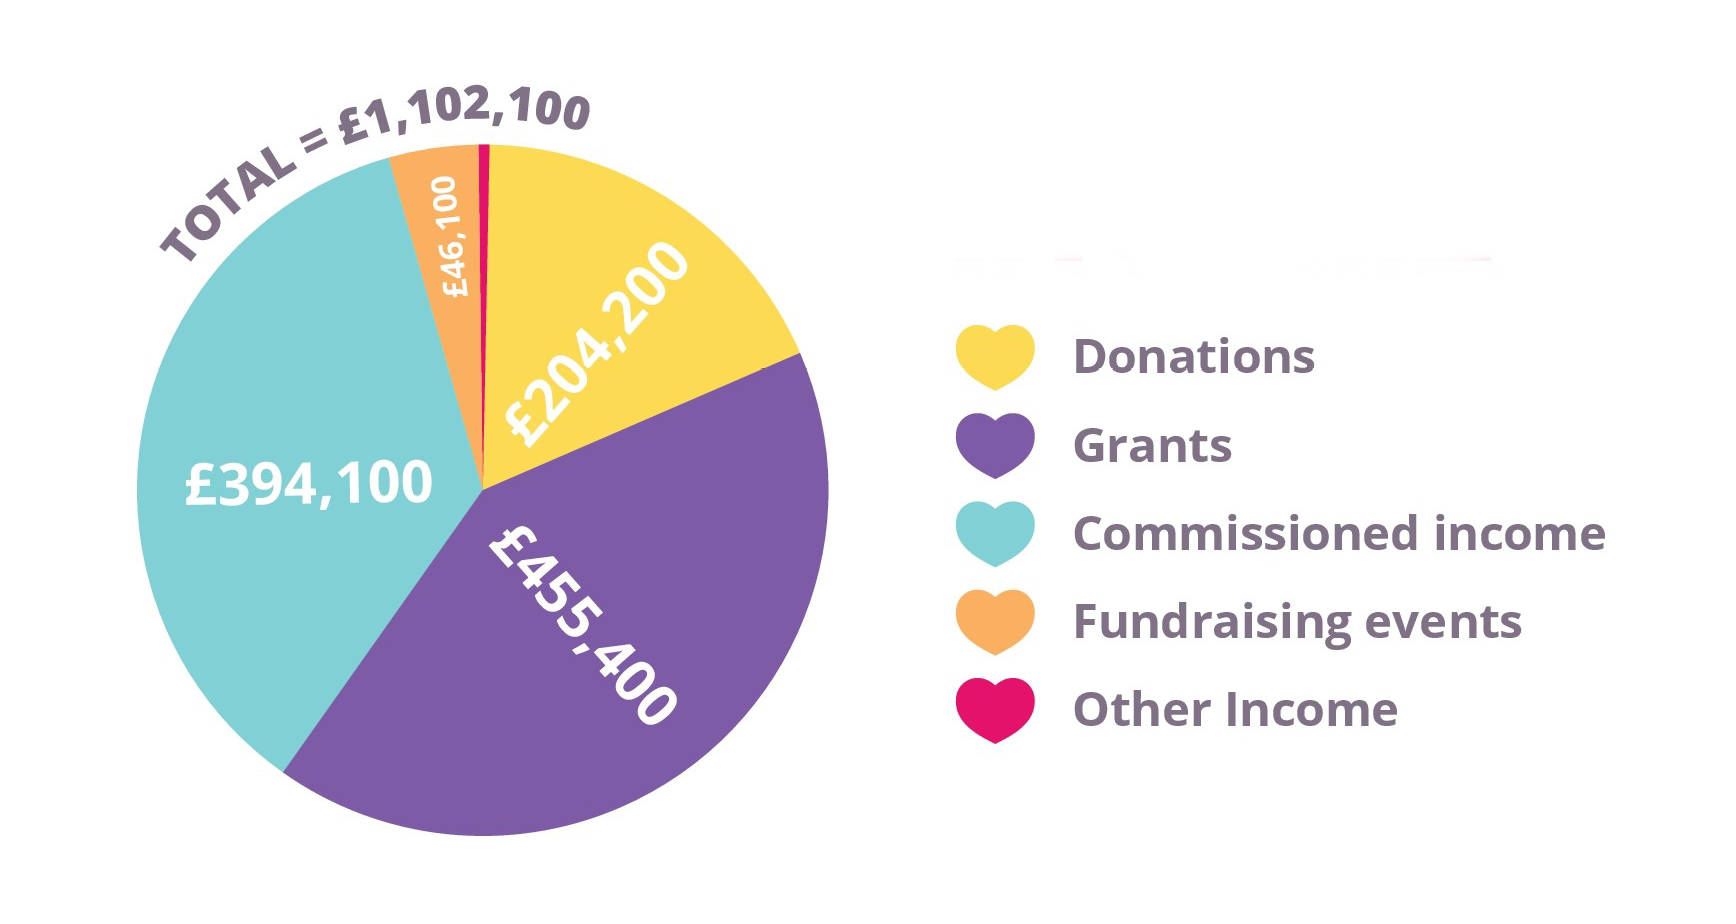 total income = £1,102,100 (commissioned income = £394,100, grants = £455,400, donations = £204,200, fudnraising events = £46,100, other income = £2,300)